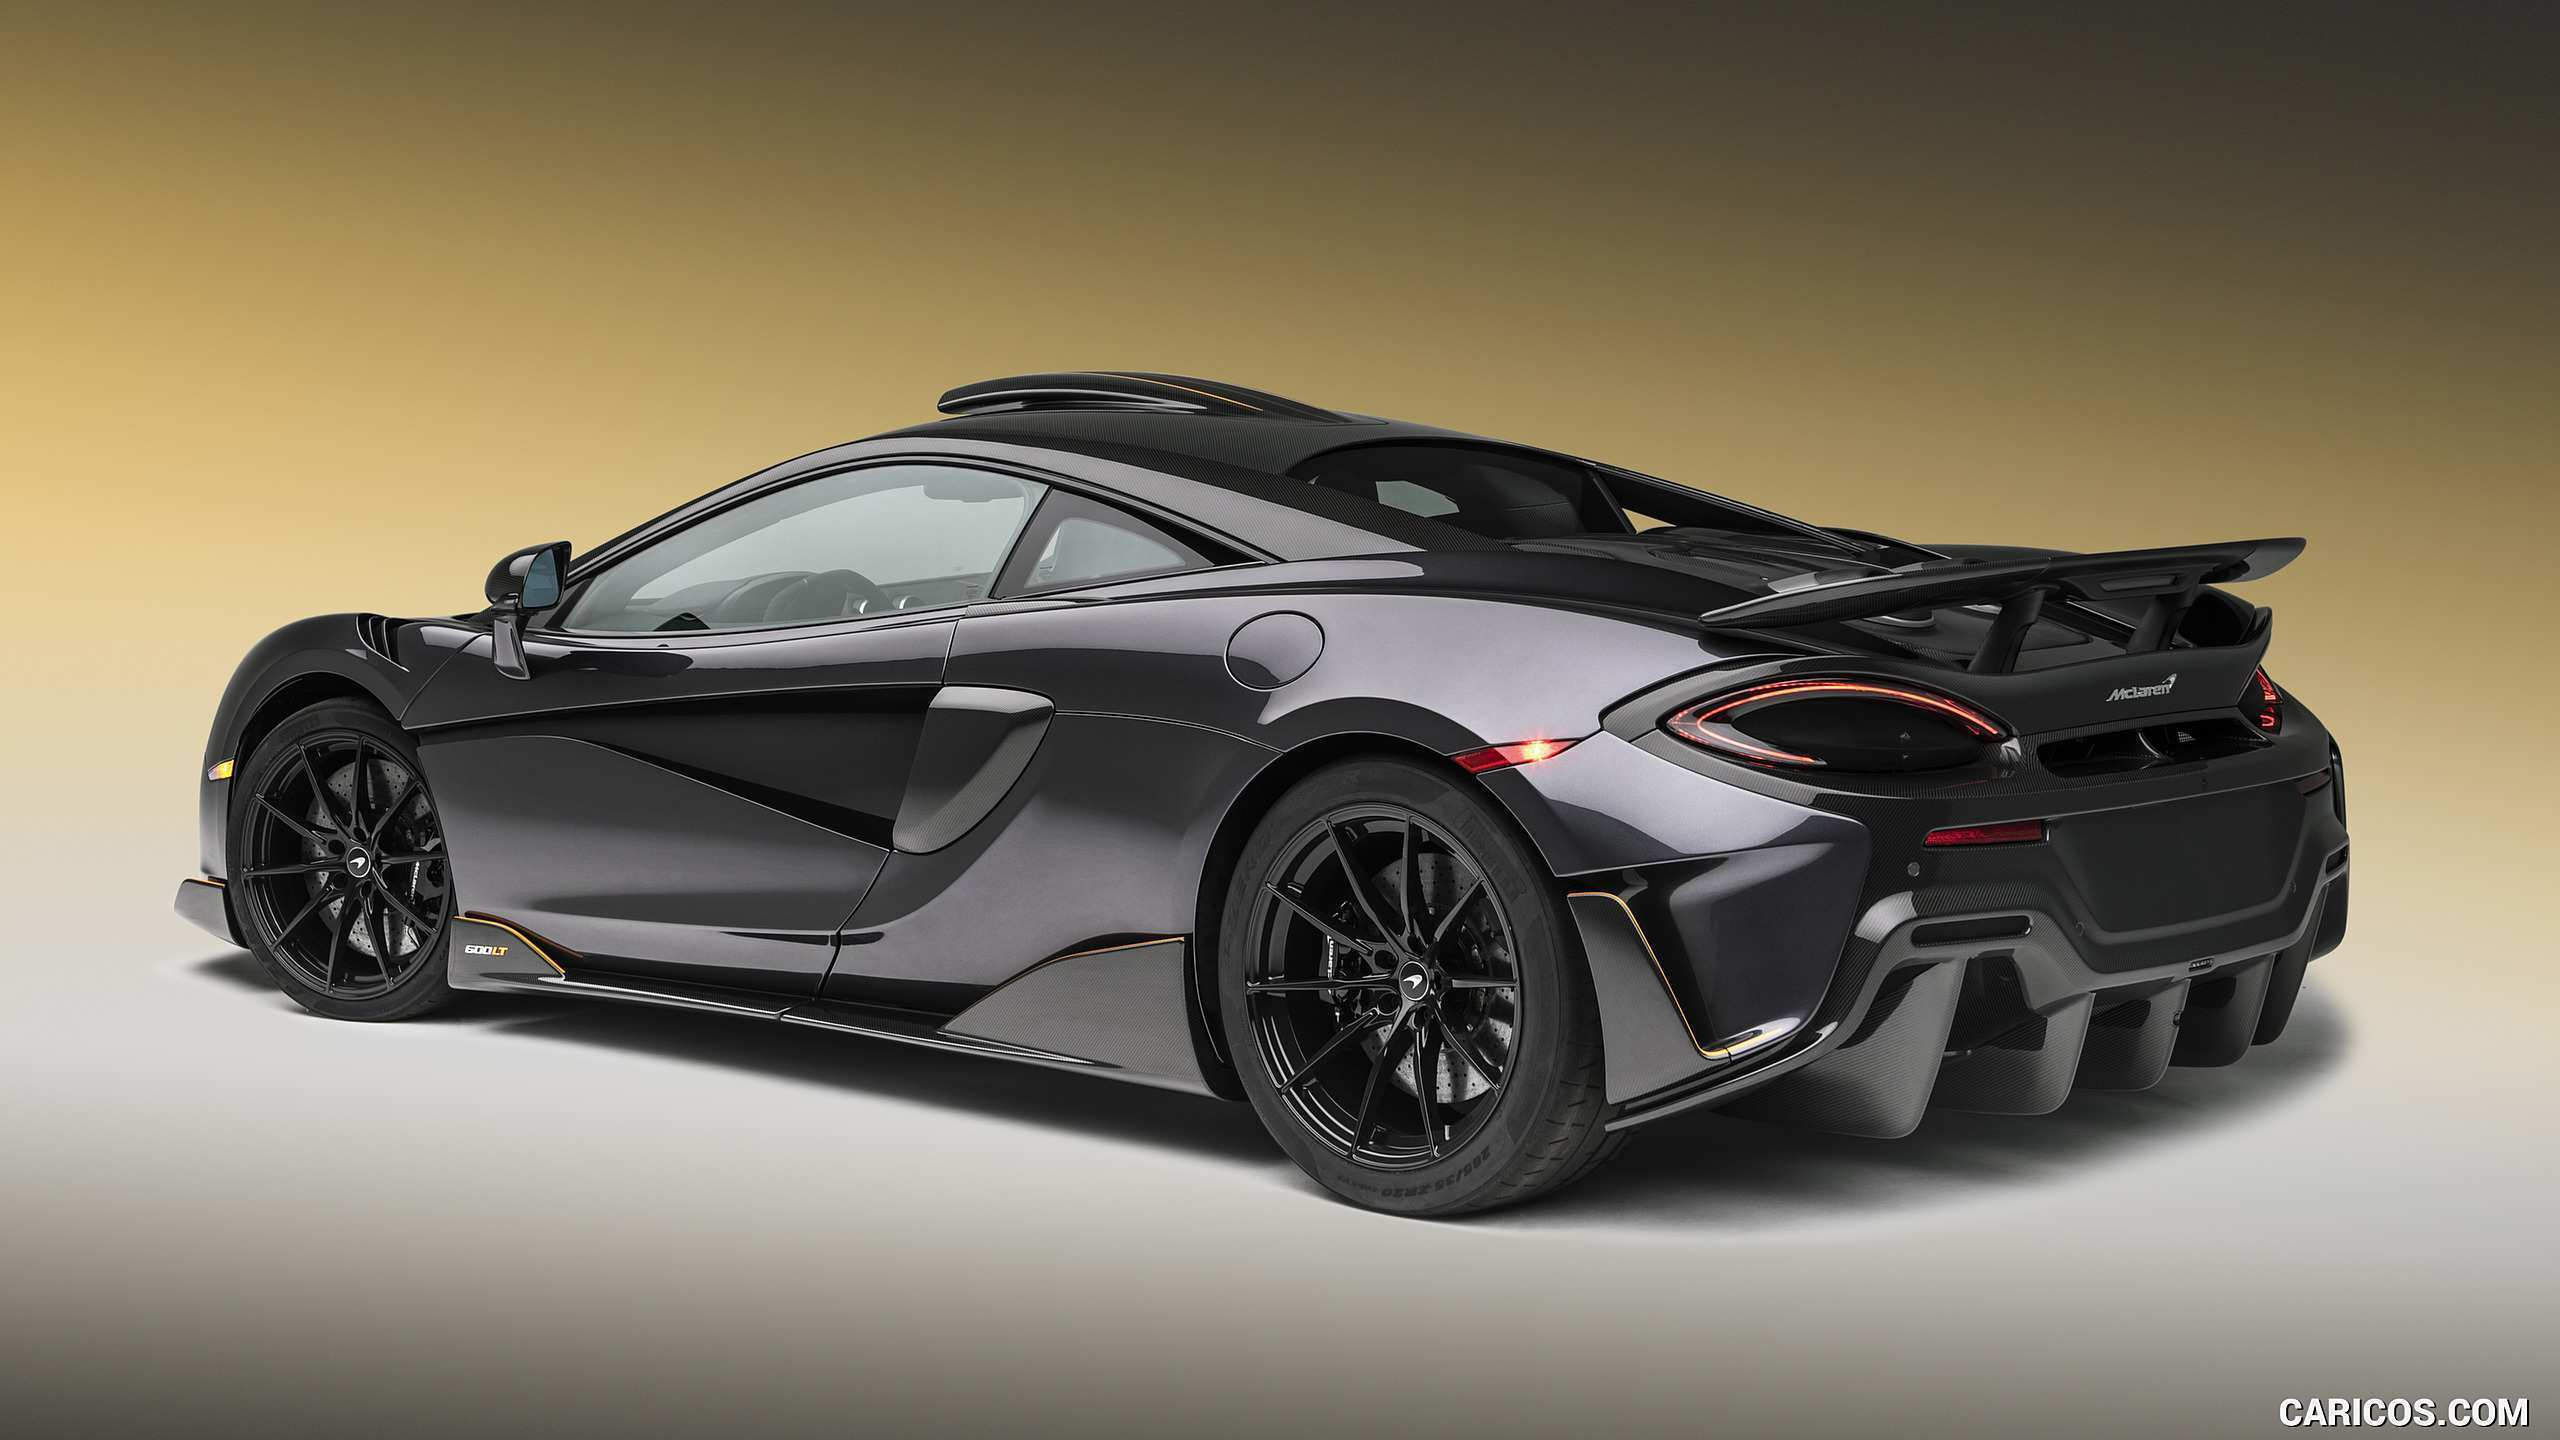 99 Concept of 2019 Mclaren 600Lt Exterior with 2019 Mclaren 600Lt